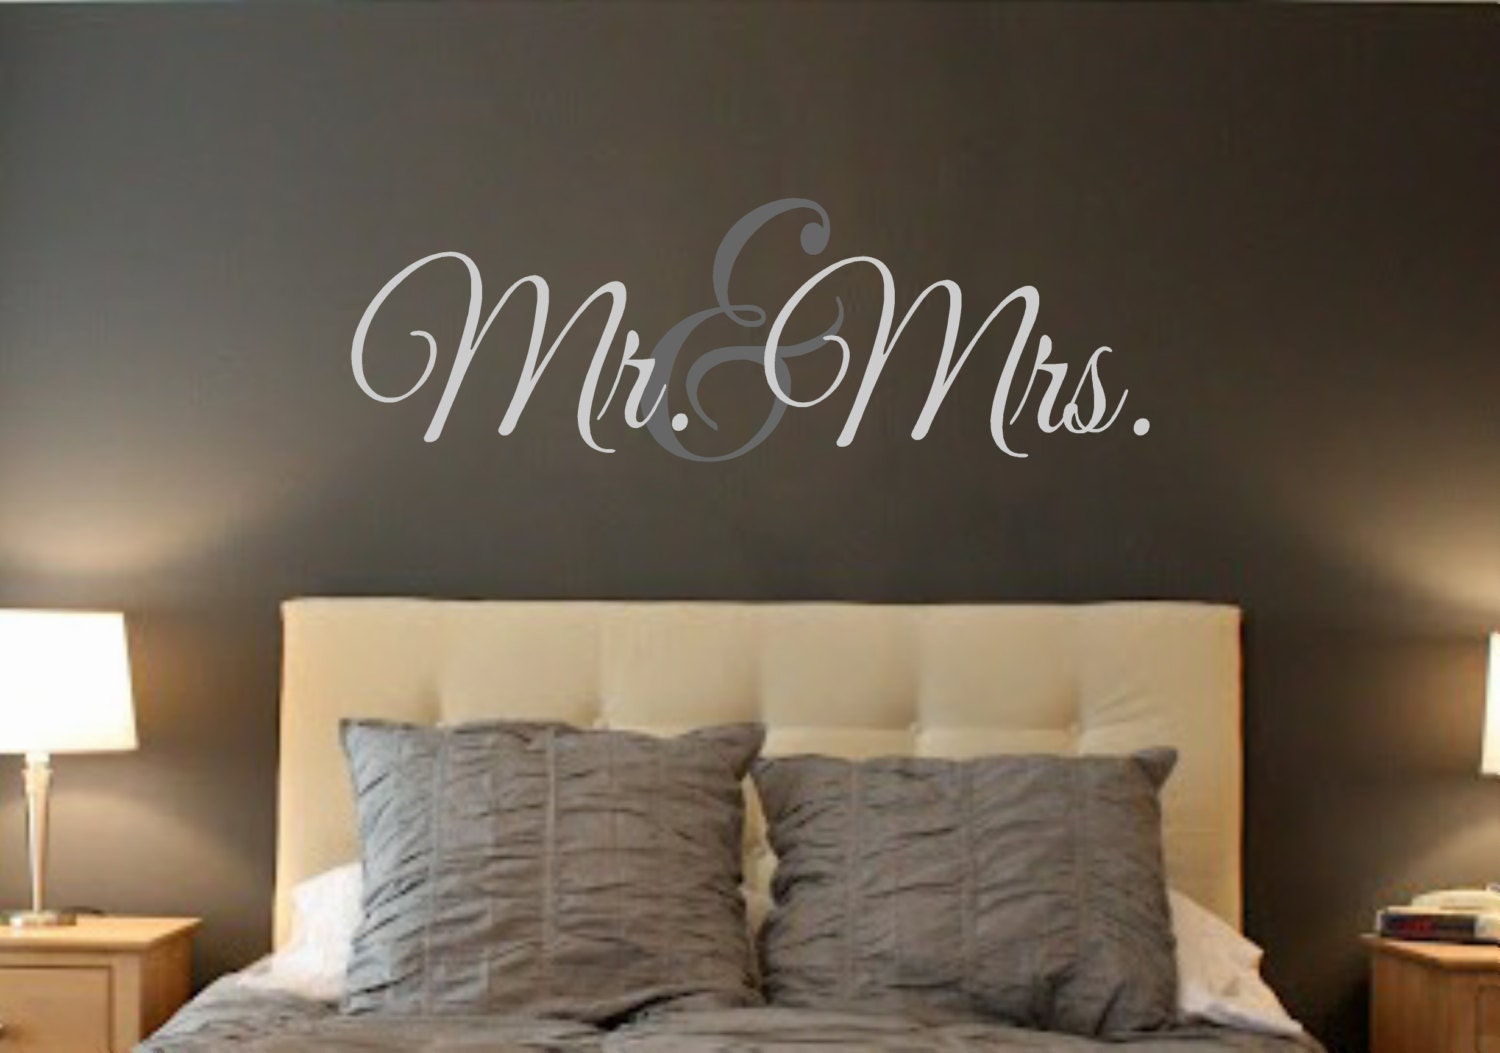 Mr mrs vinyl wall decal wall quotes decals words for zoom amipublicfo Choice Image